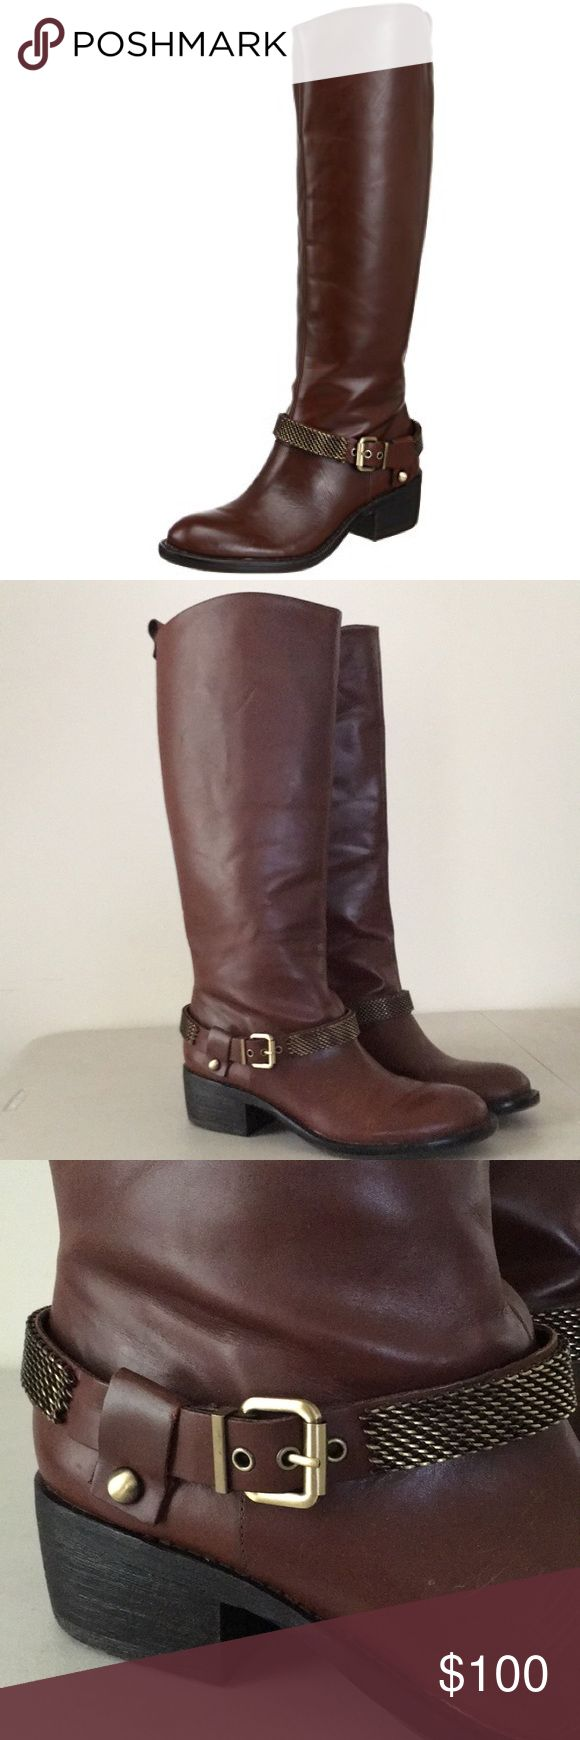 """BCBGeneration Alender riding boot BCBG Alender knee-high riding boot. Color castagno (brown). Sz 10m.  Leather with synthetic sole, beautiful leather and metal strap with buckle. shaft is 161/2 in from arch, heel is approx 1 3/4"""" boot opening approximately 14 3/4"""" around.  Shaft height 17"""", shaft circumference approx 15"""" Pull on equestrian style boot Great boot to wear with pants leggings and skirts. Worn once.  $100 or best offer BCBGeneration Shoes Heeled Boots"""